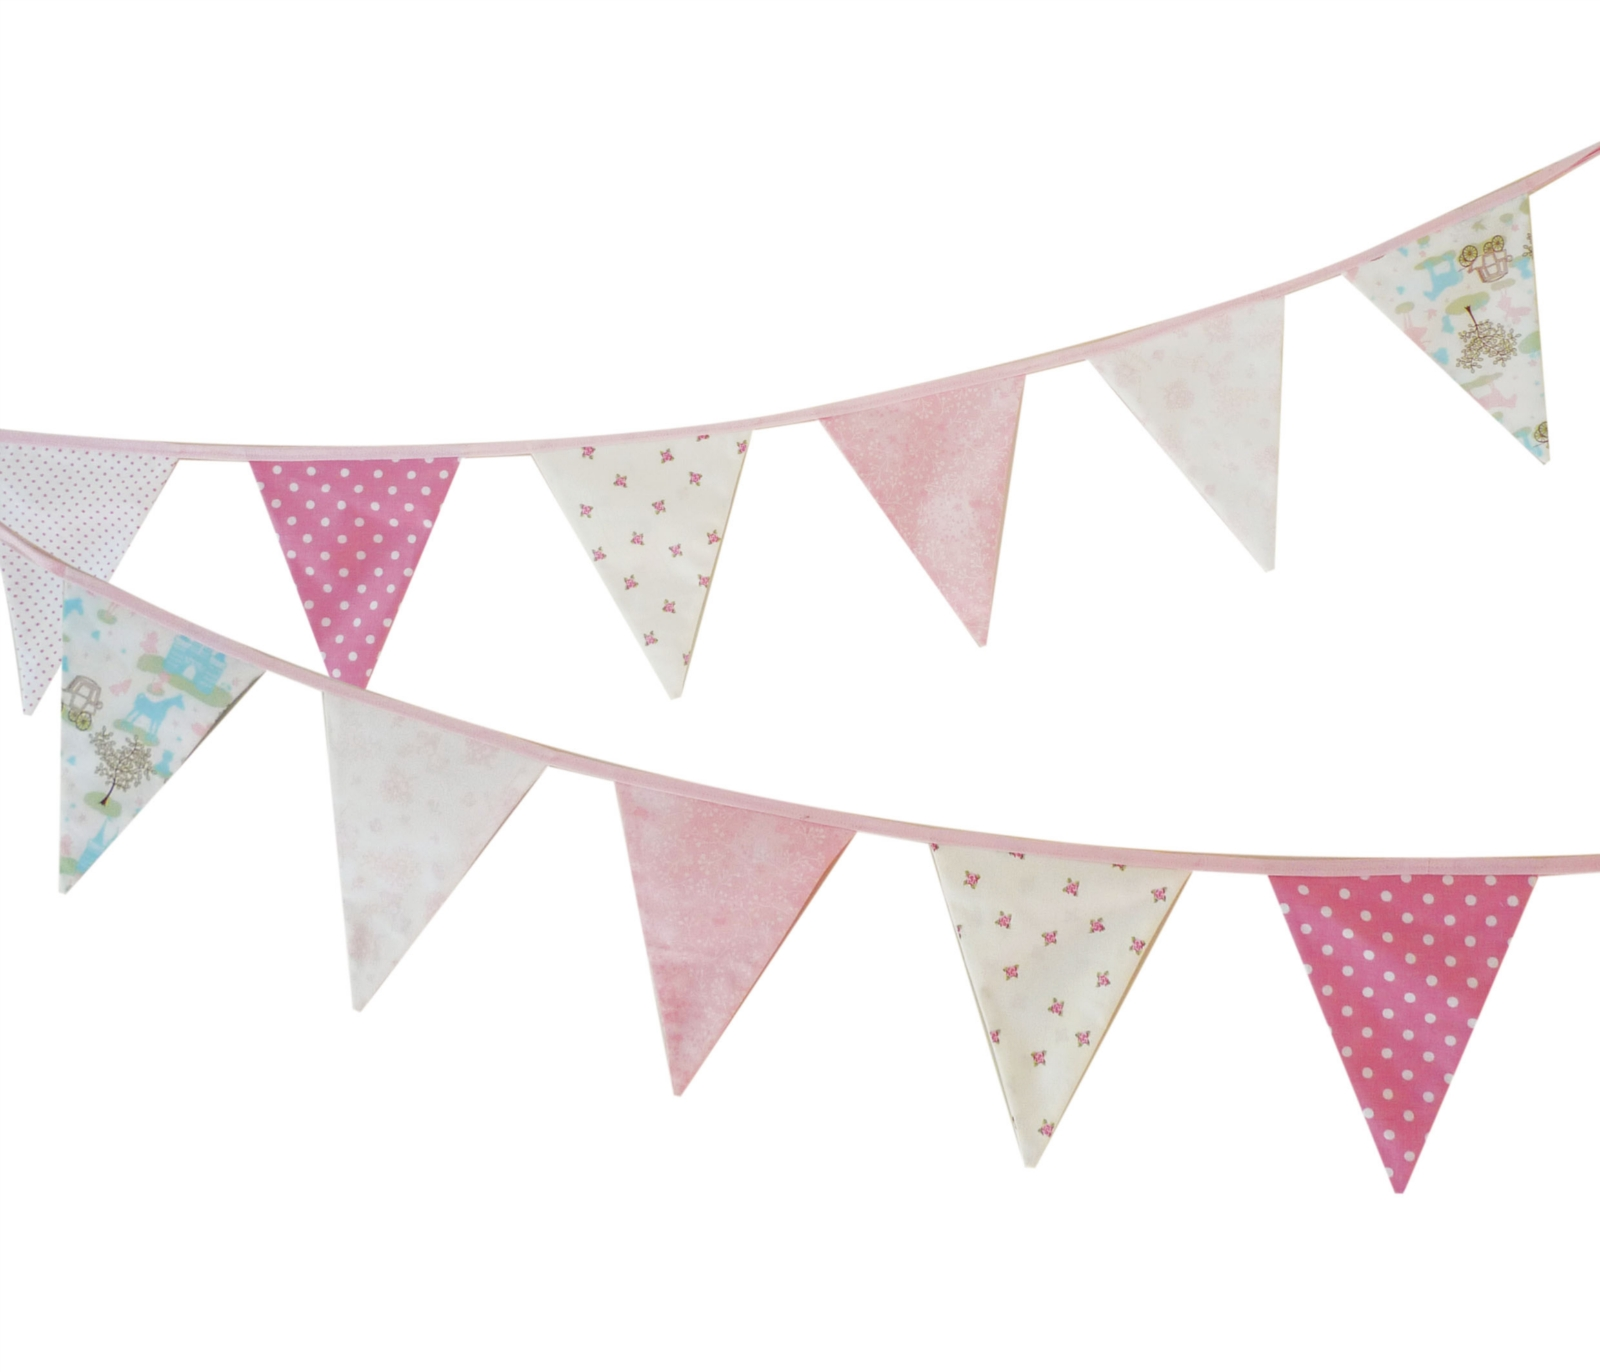 Miss Lovie: Flag Bunting Tutorial and Free Printable Template